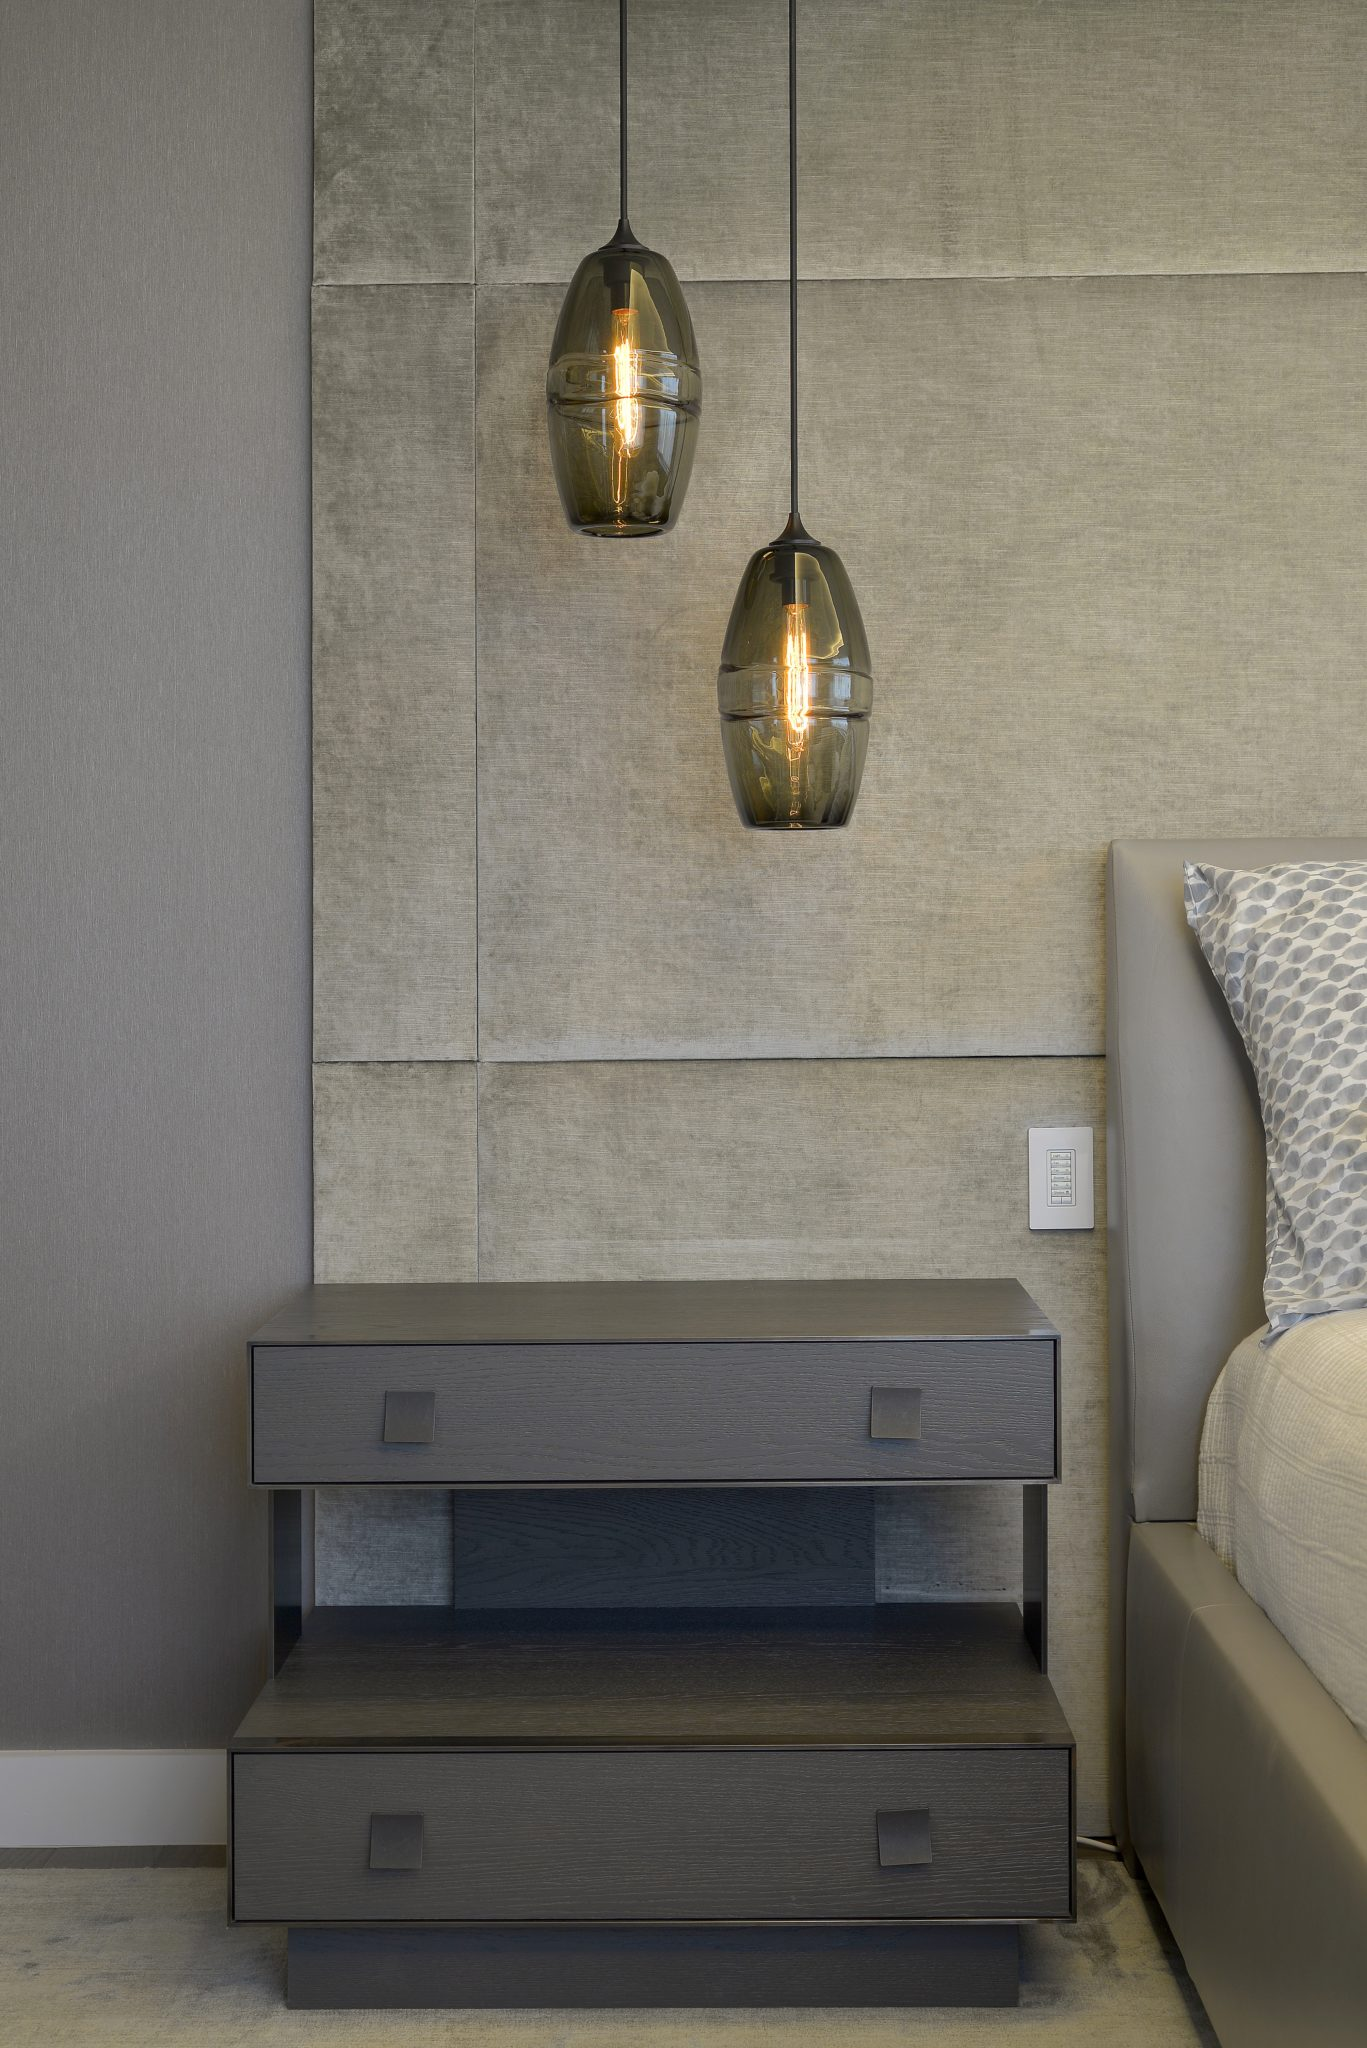 A Pair of Pendant Lights Hang Above a Carol Kurth Designed Nightstand by Carol Kurth Architecture + Interiors